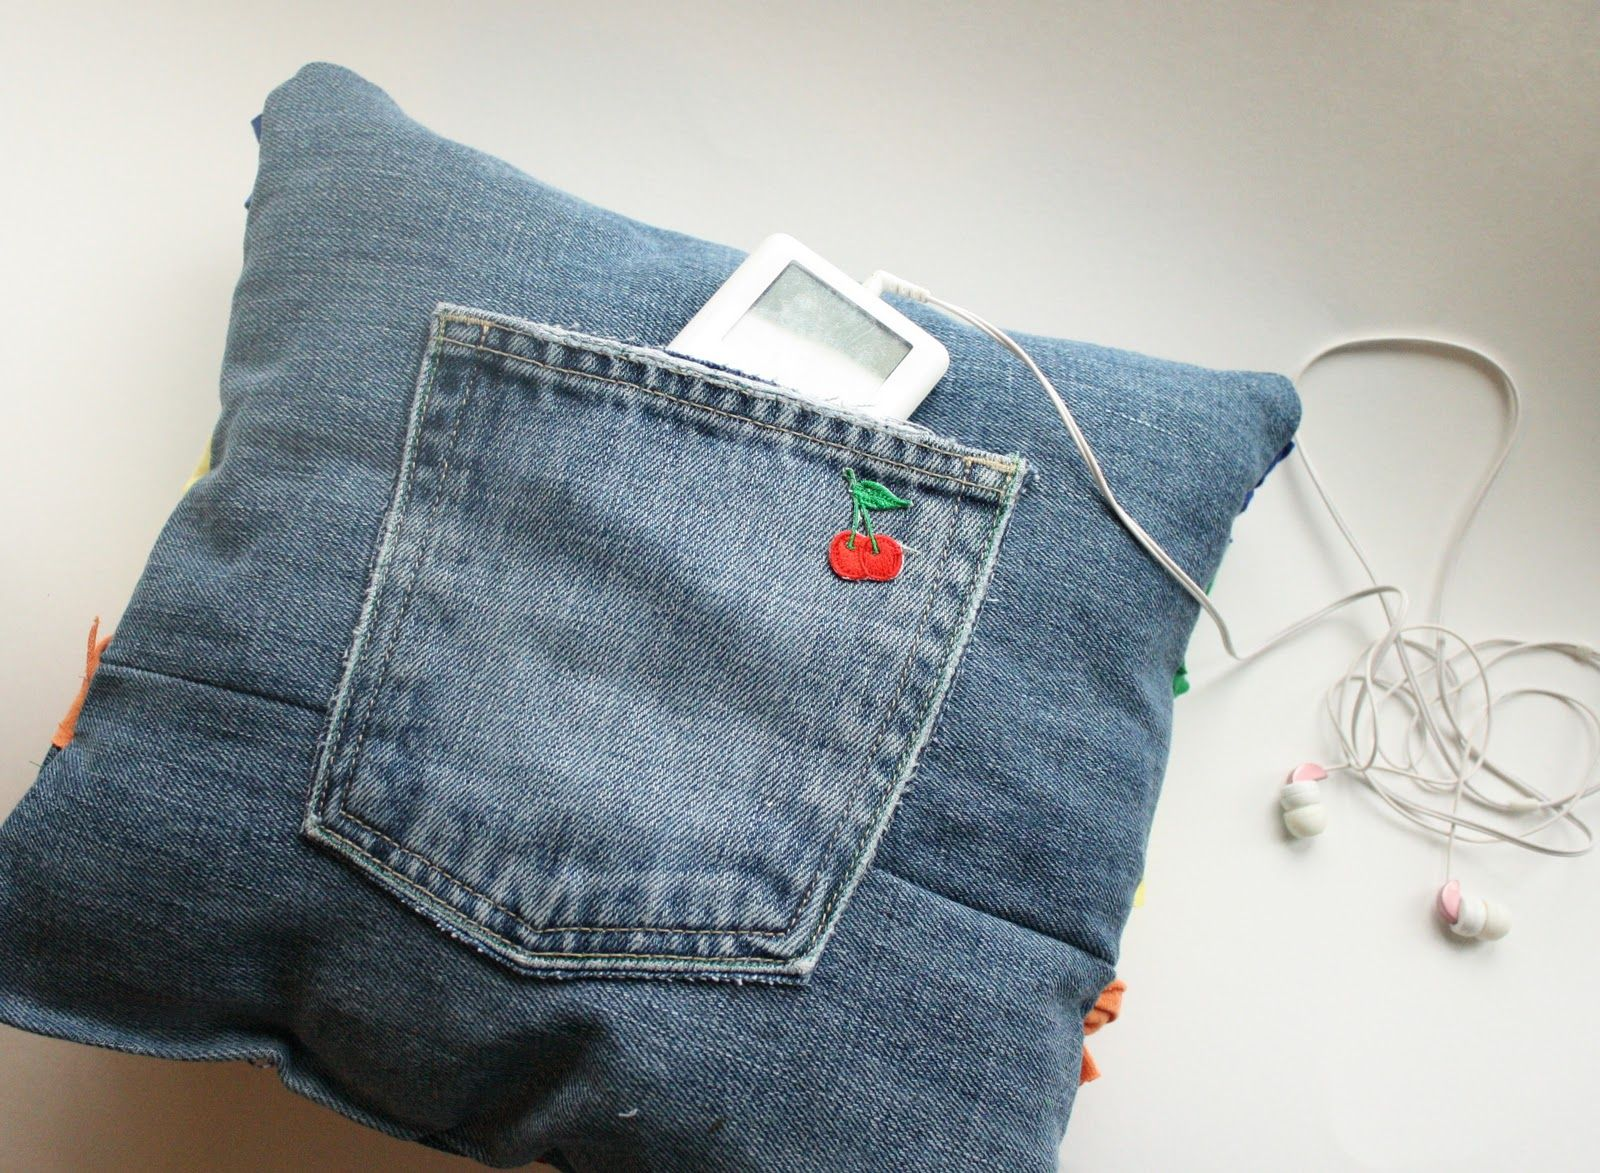 . old jeans, old t-shirts, and previous stuffing from a tired pillow